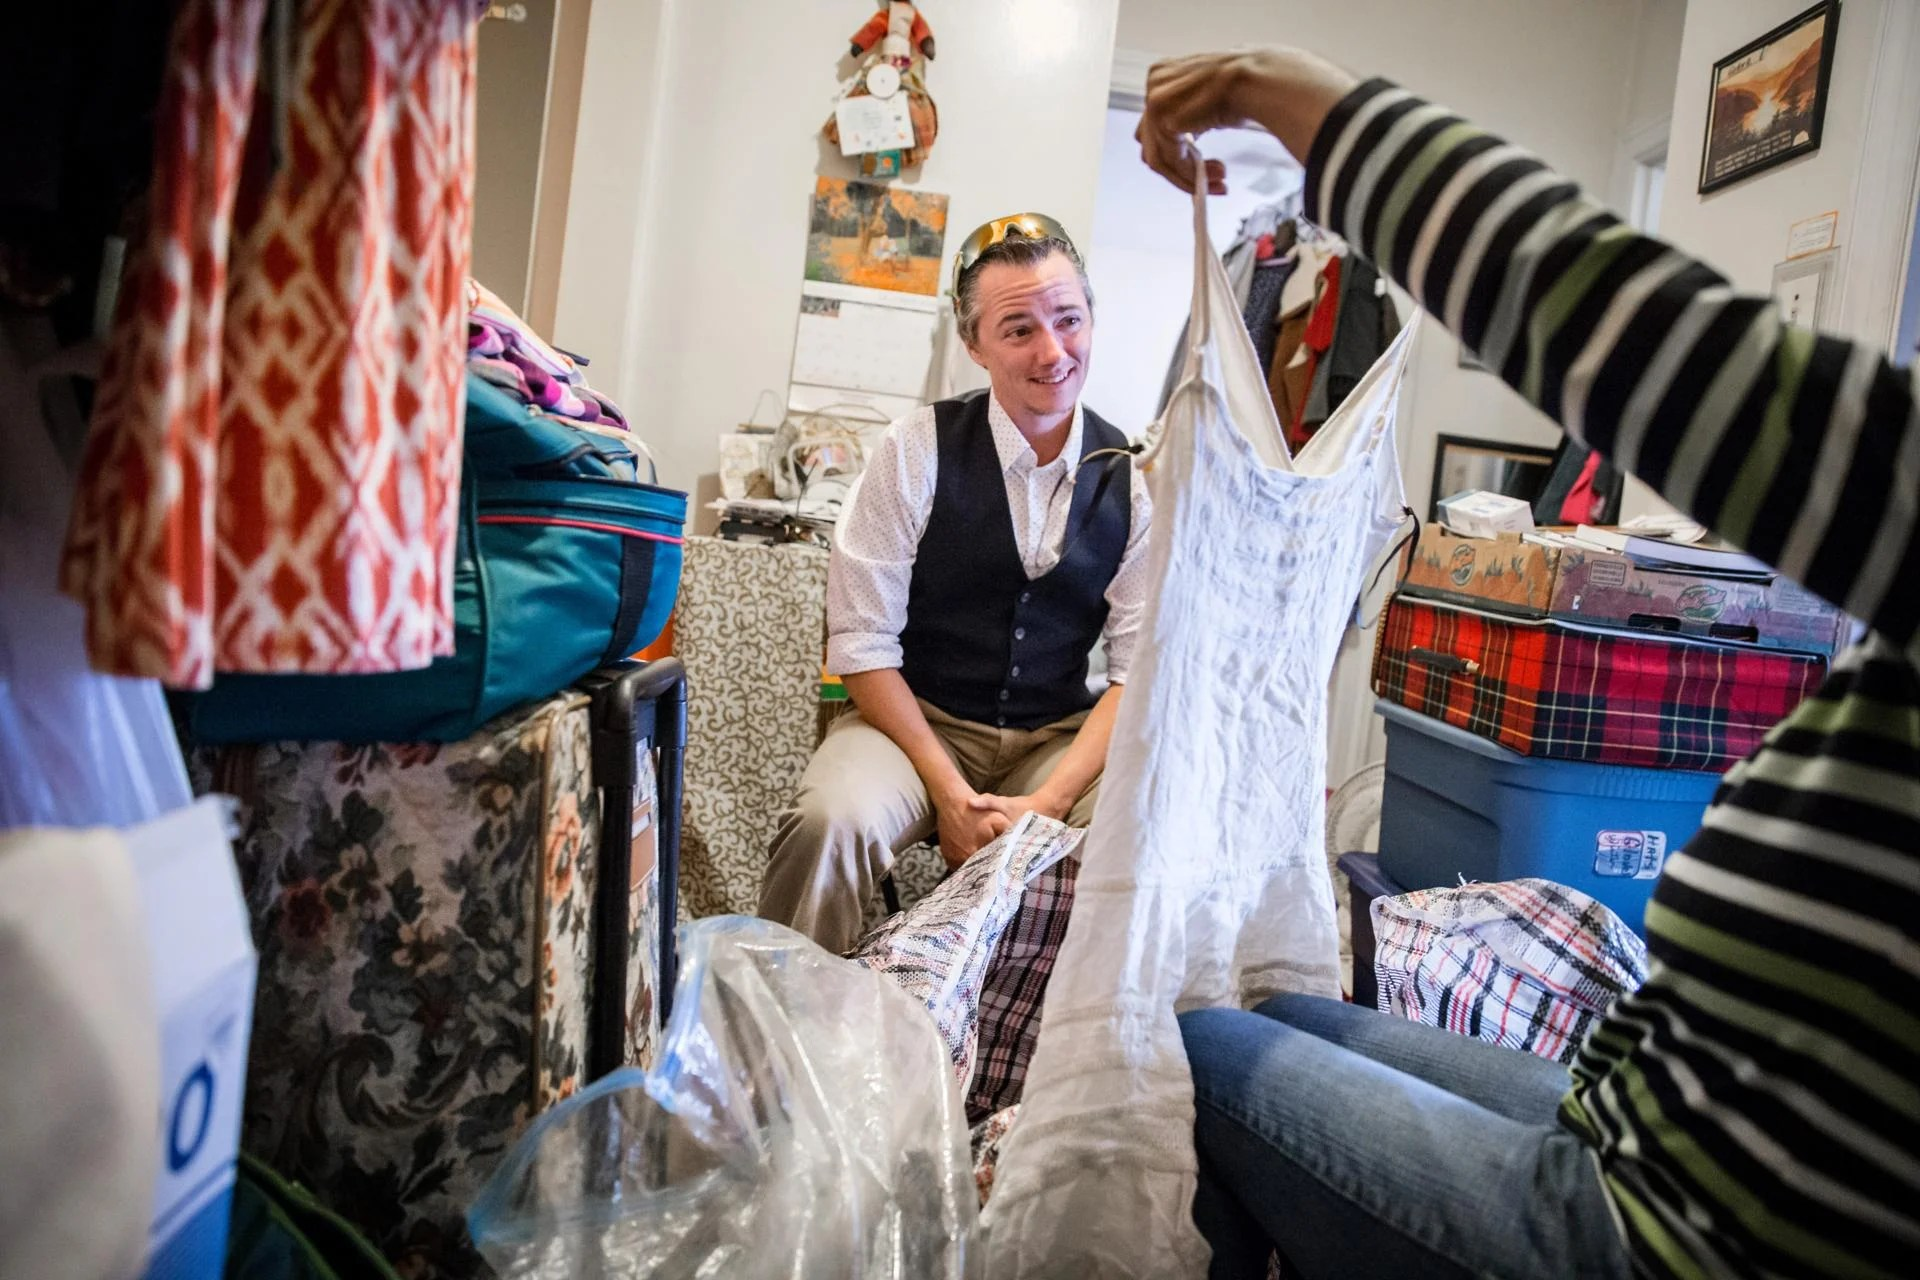 10/13/2016 MATTAPAN, MA Jesse Edsell-Vetter (cq), Hoarding Intervention Program Manager, helps his client sort through clothing during a site visit at a home in Mattapan. (Aram Boghosian for The Boston Globe)